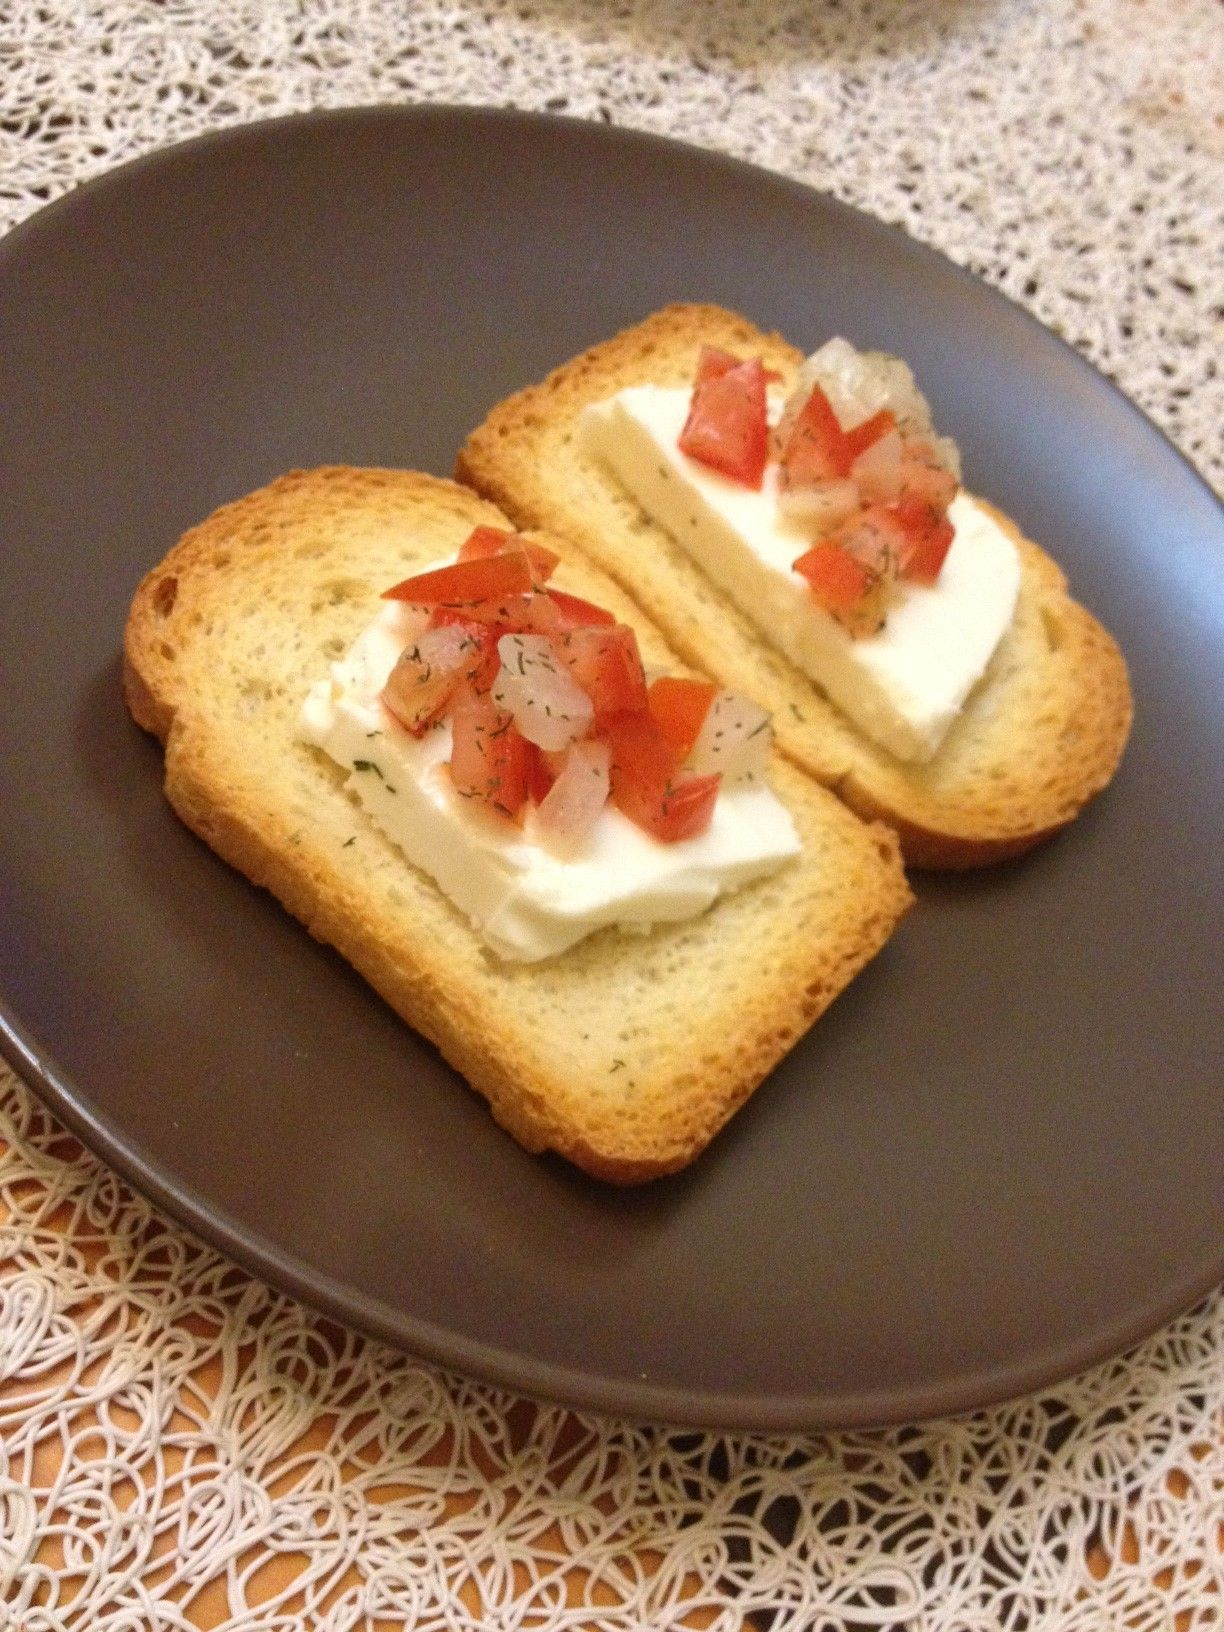 Tostas de queso fresco y pico de gallo